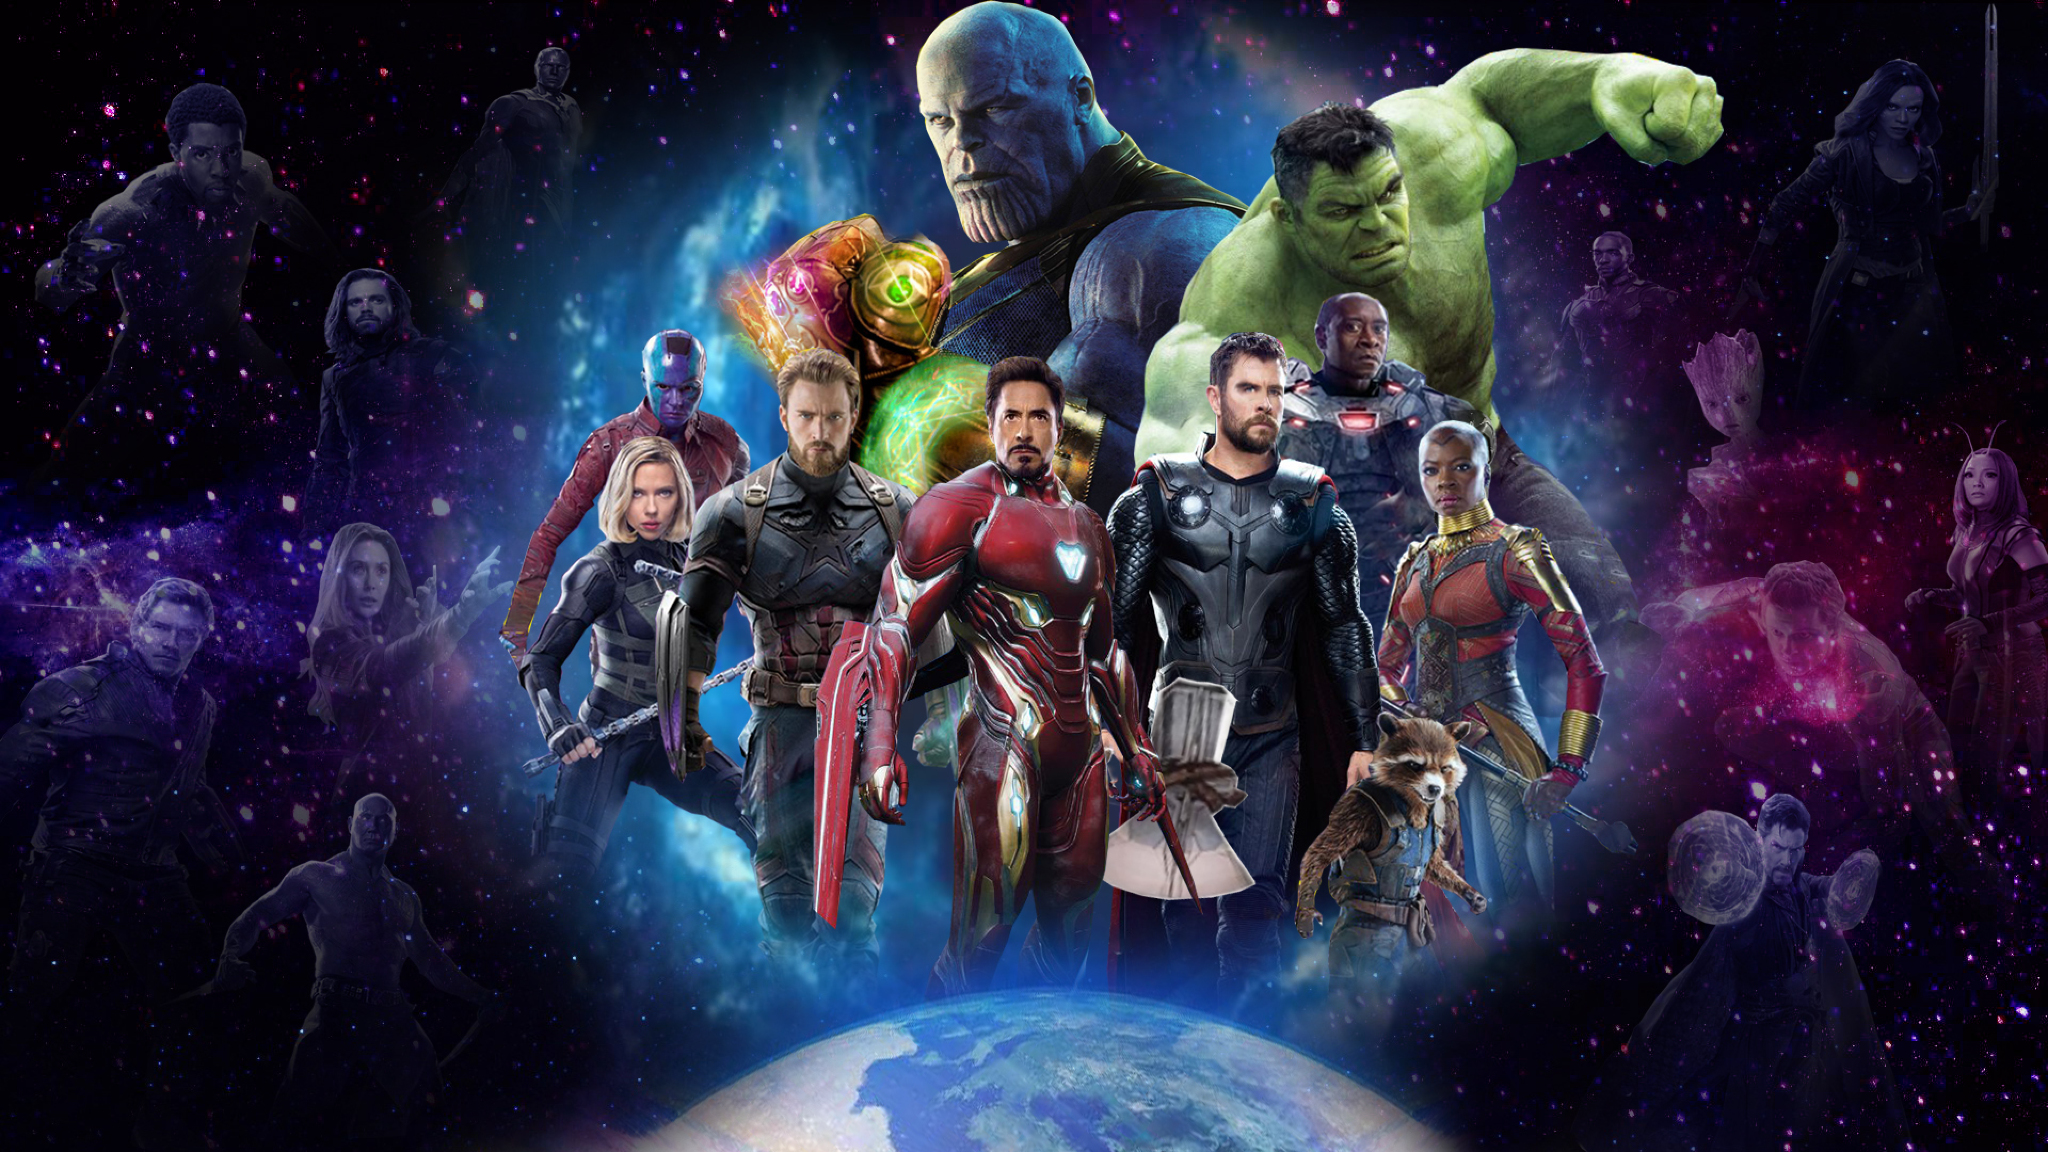 Avengers infinity war hindi dubbed movie download mp4moviez